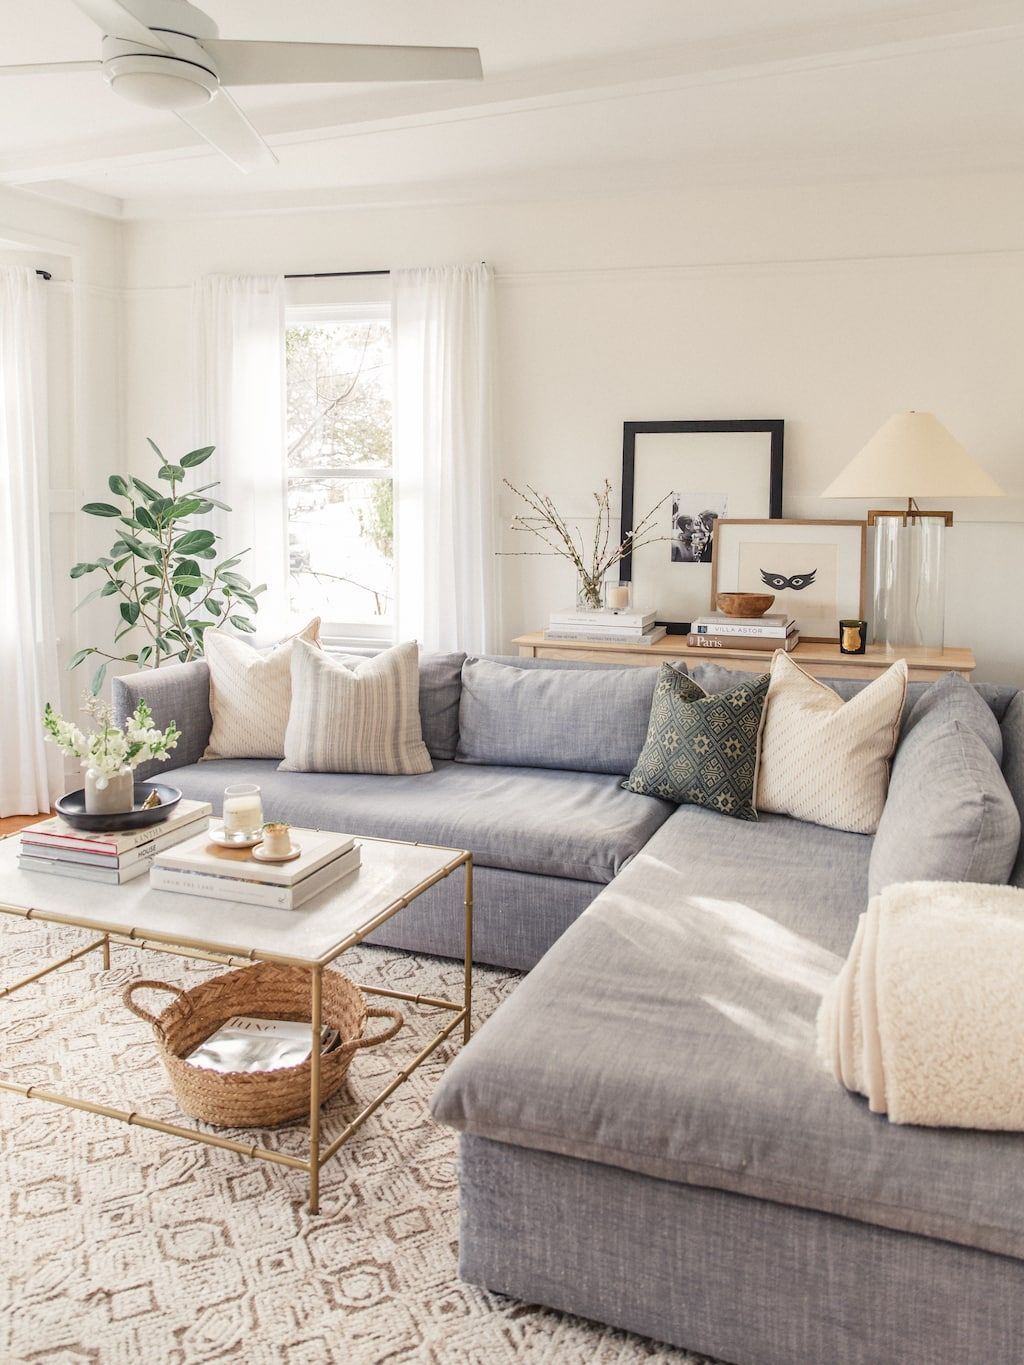 Home Decorating Trends 2020 Small apartment decorating